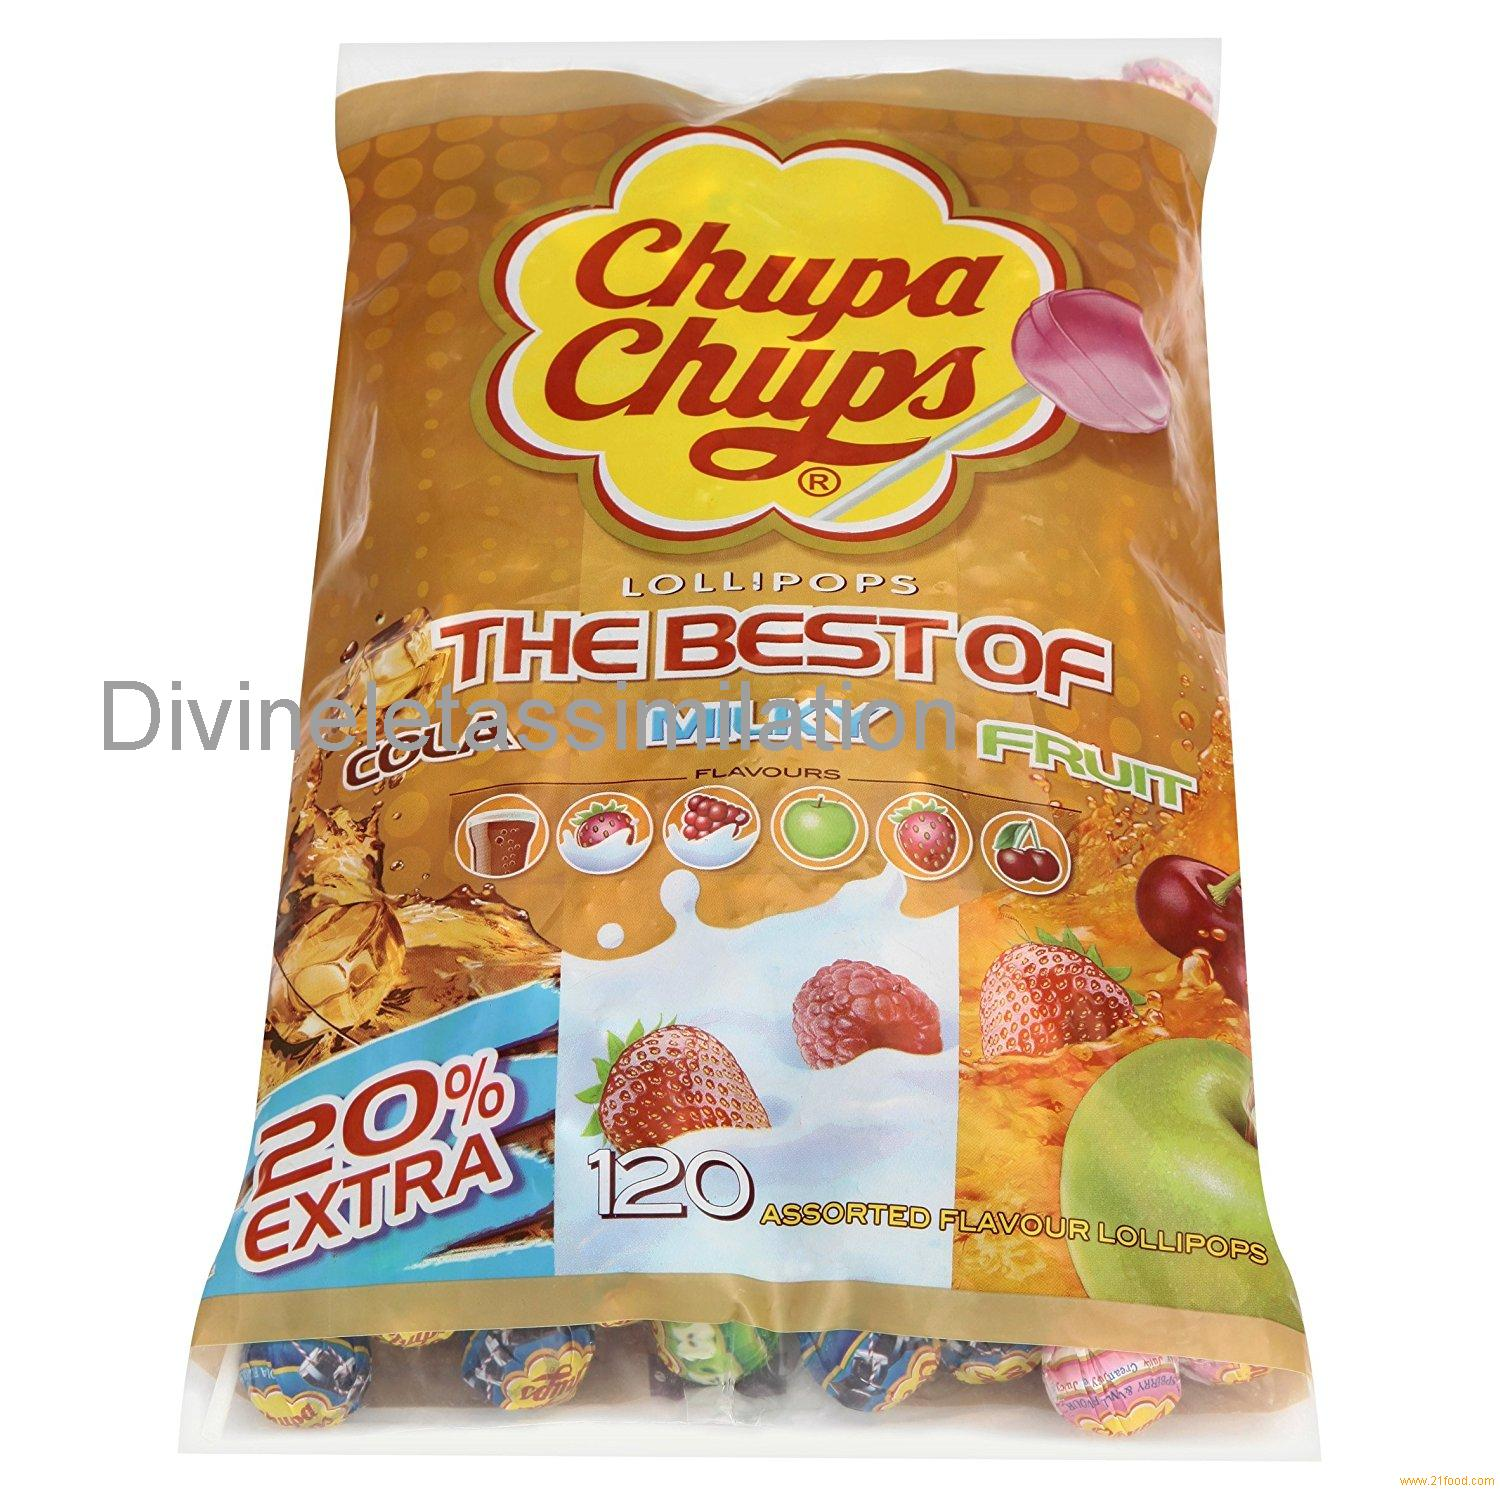 Chupa Chups The Best Of 120 Lollipops